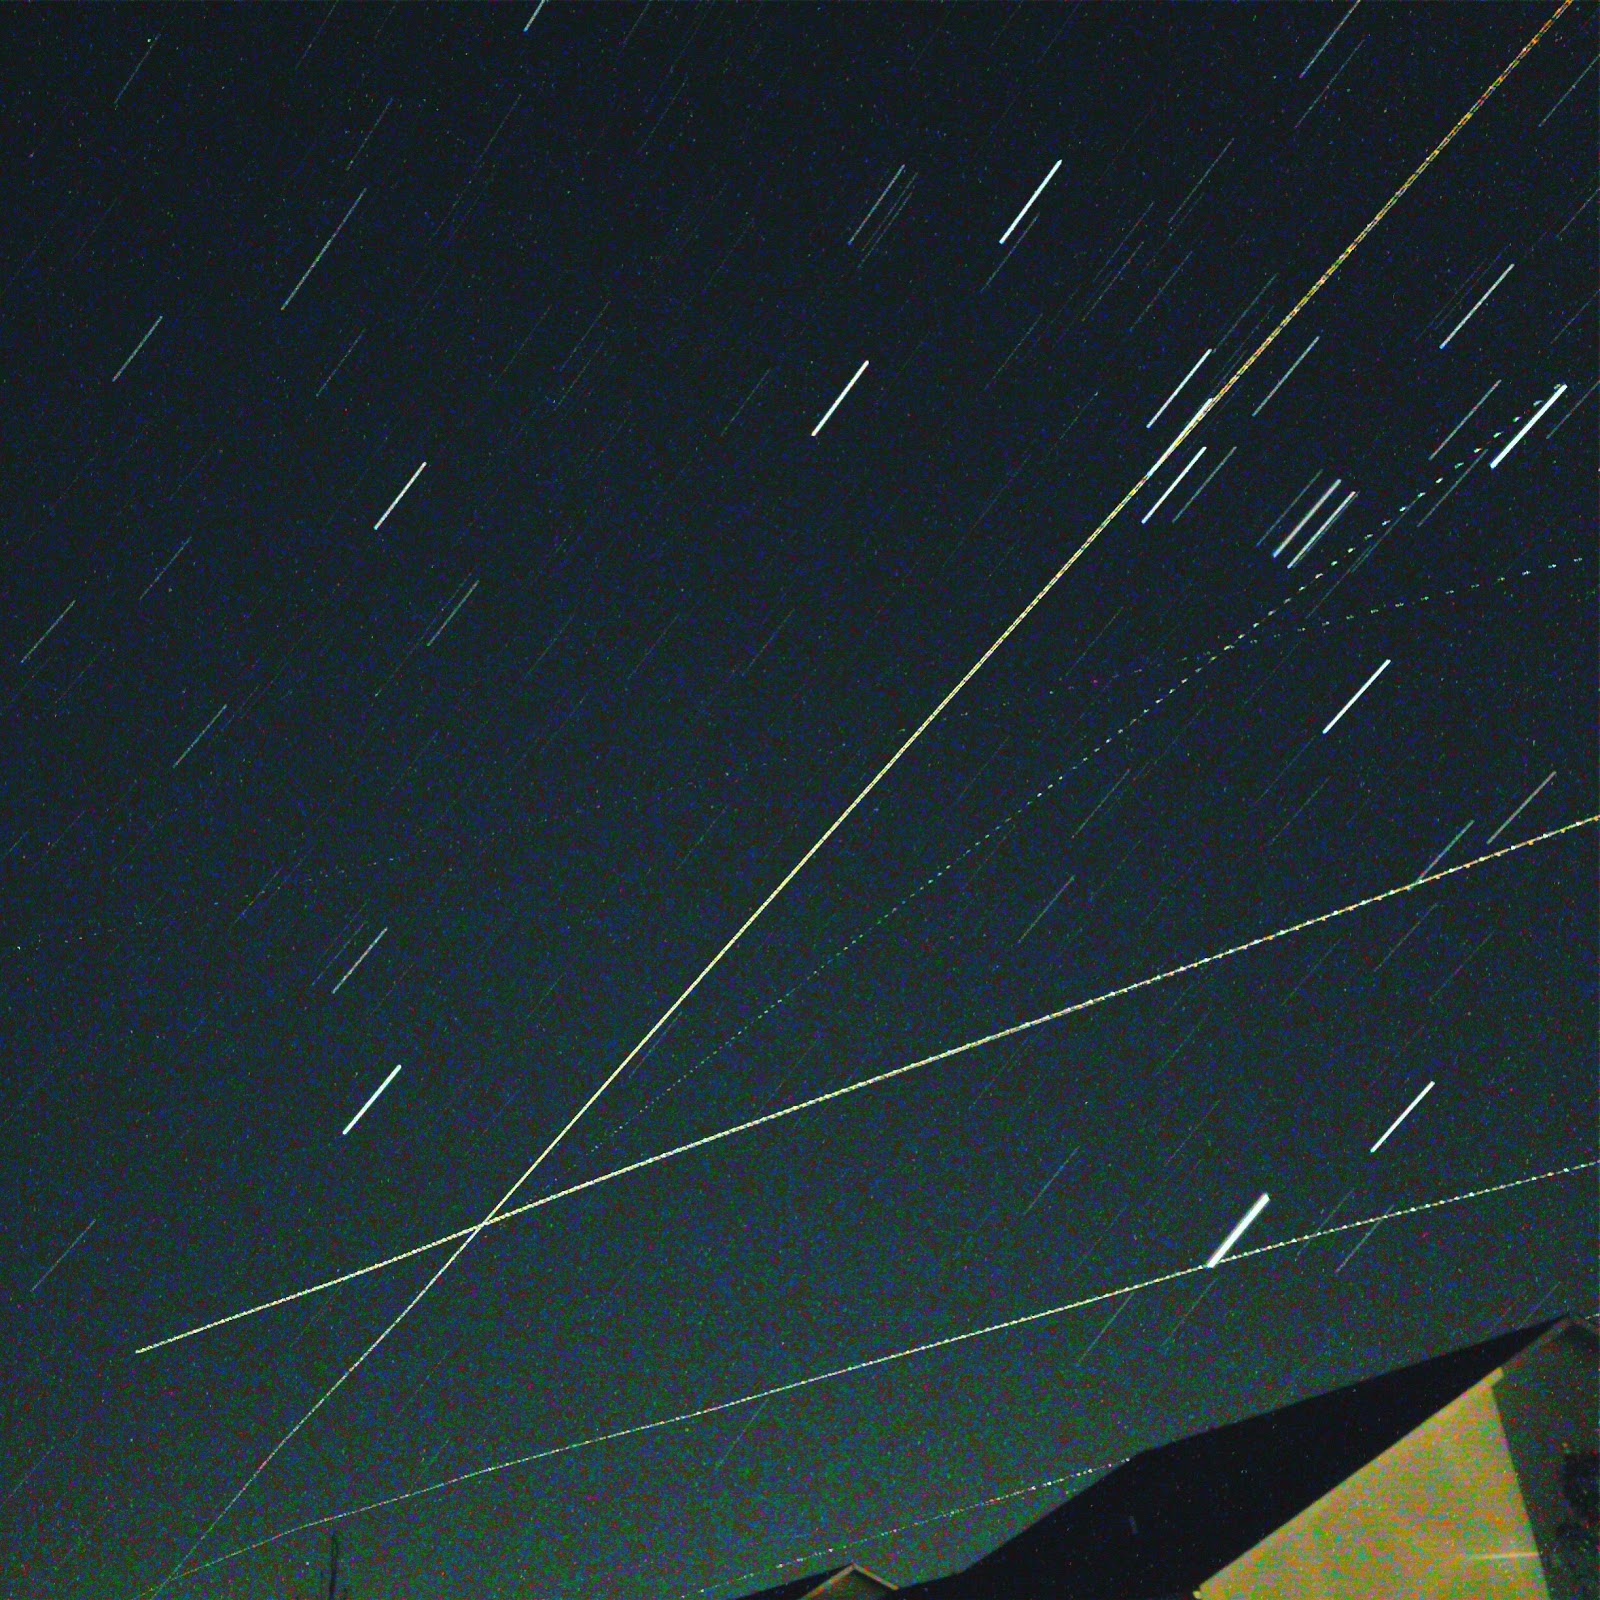 Night Sky IPhone Photos With In-App Star Trails [Stellar